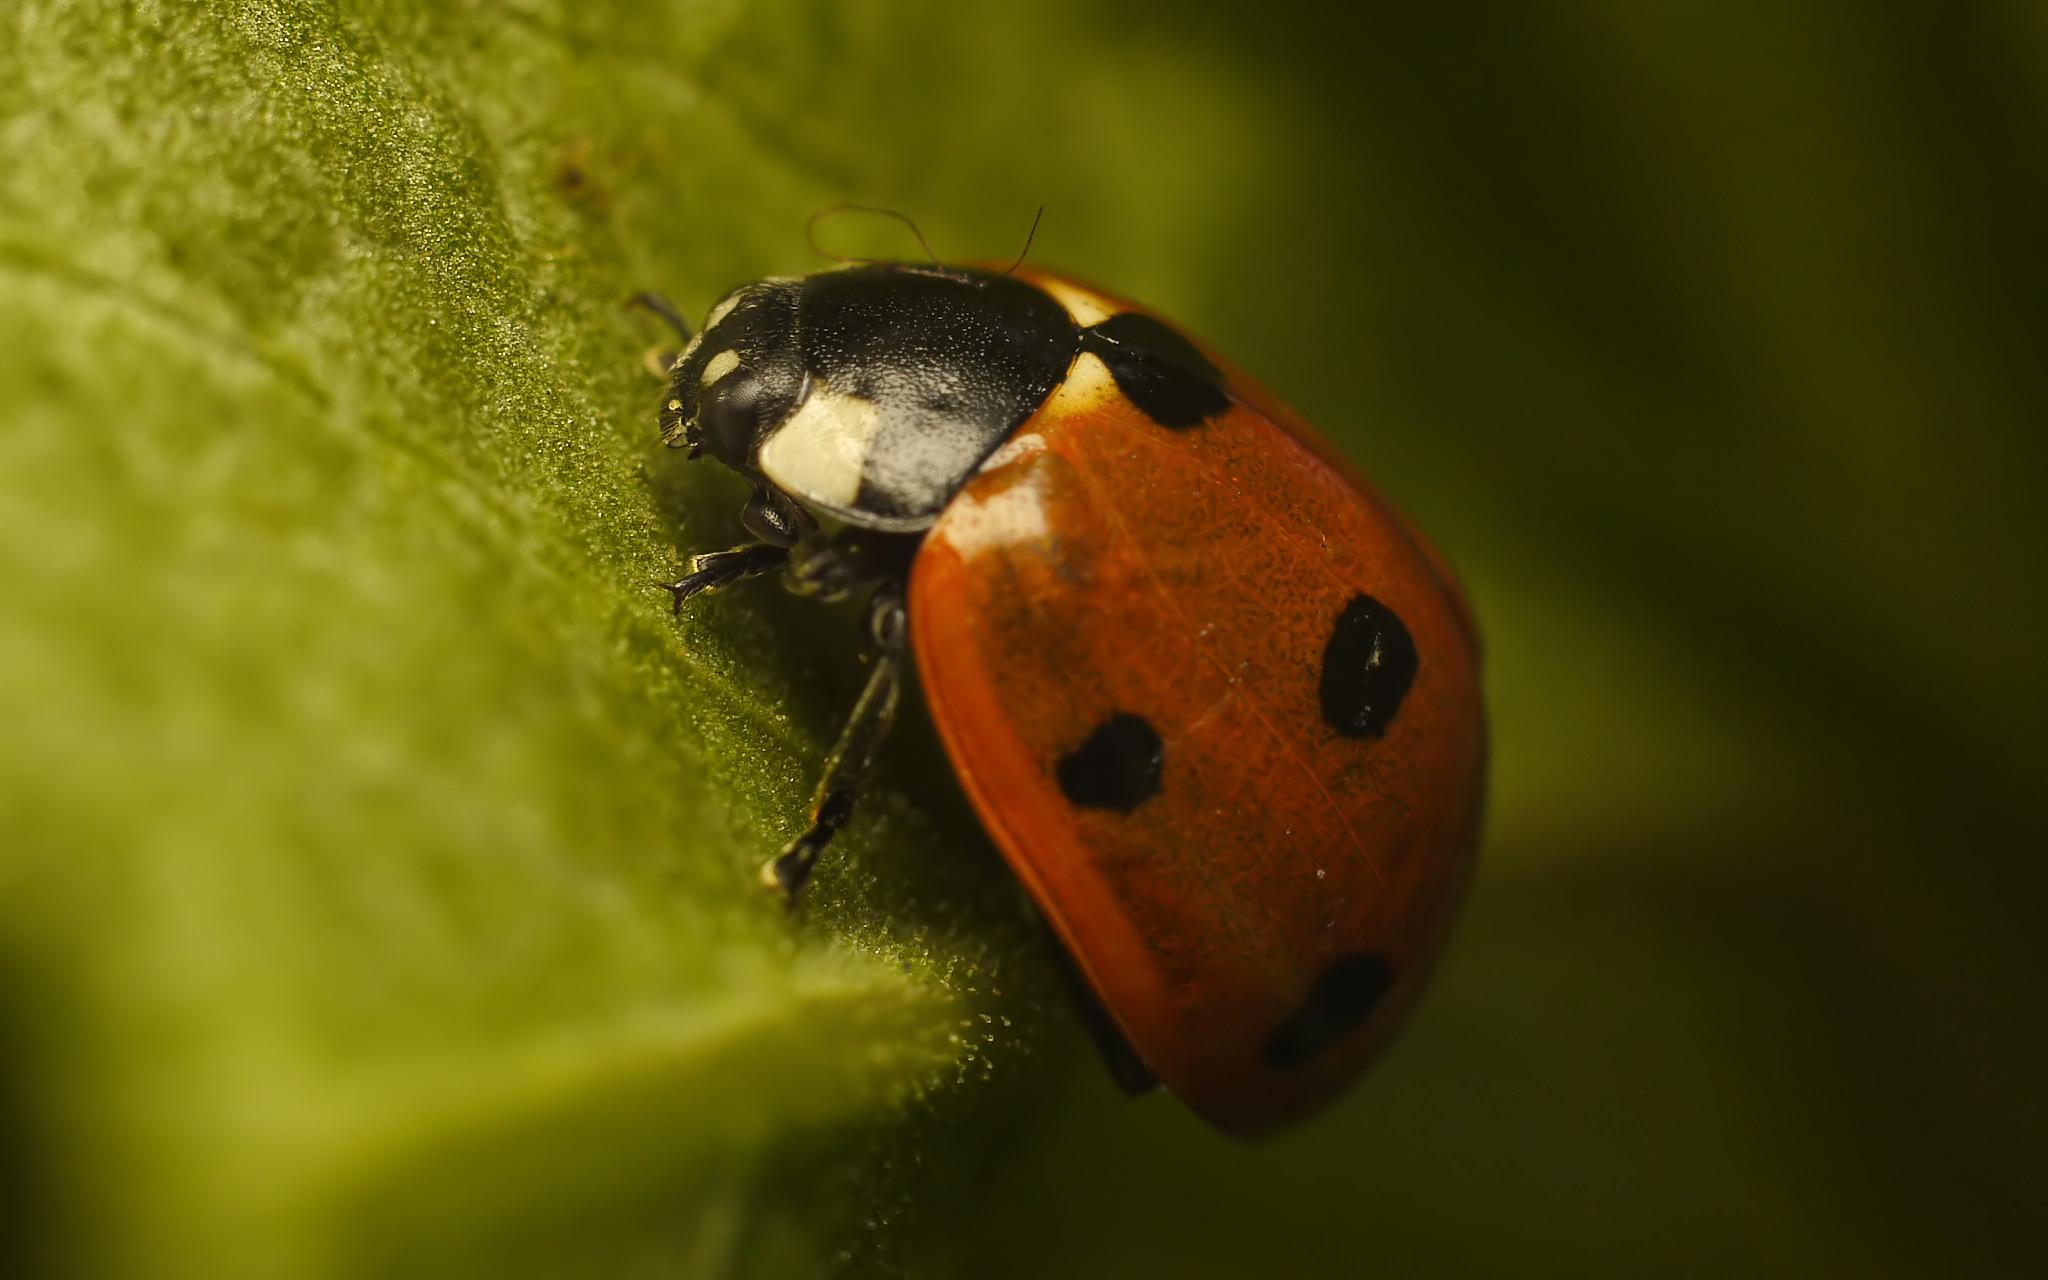 Lady bug by Asterix93